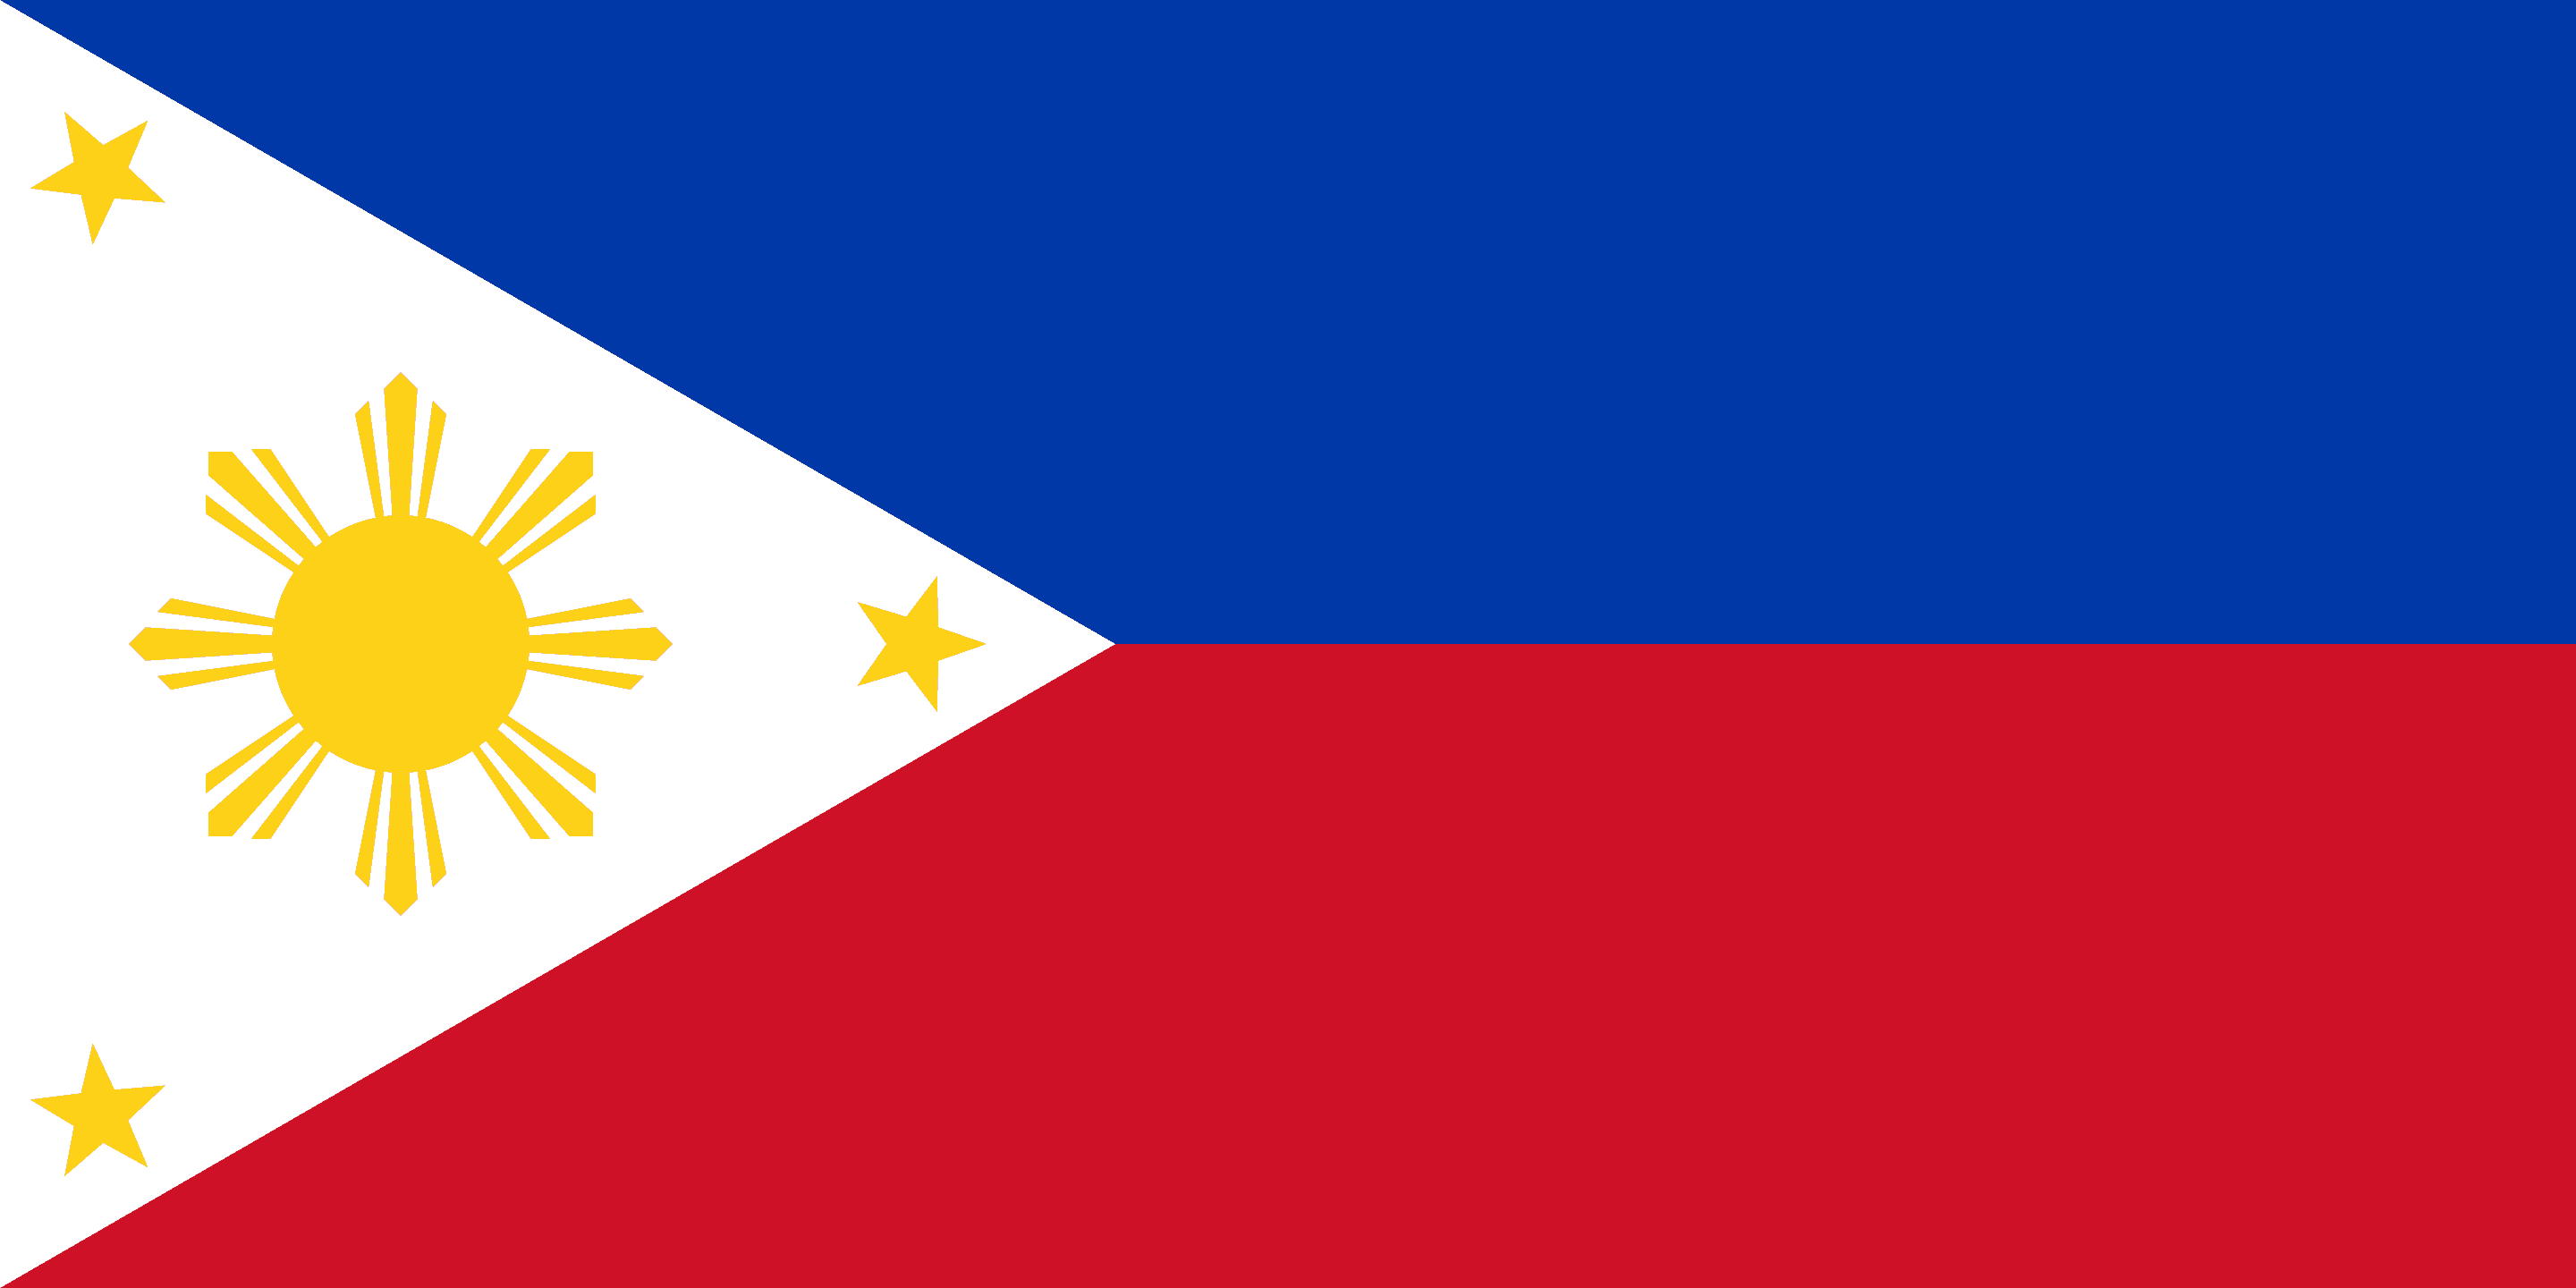 Philippines Flag - The Philippines drone laws